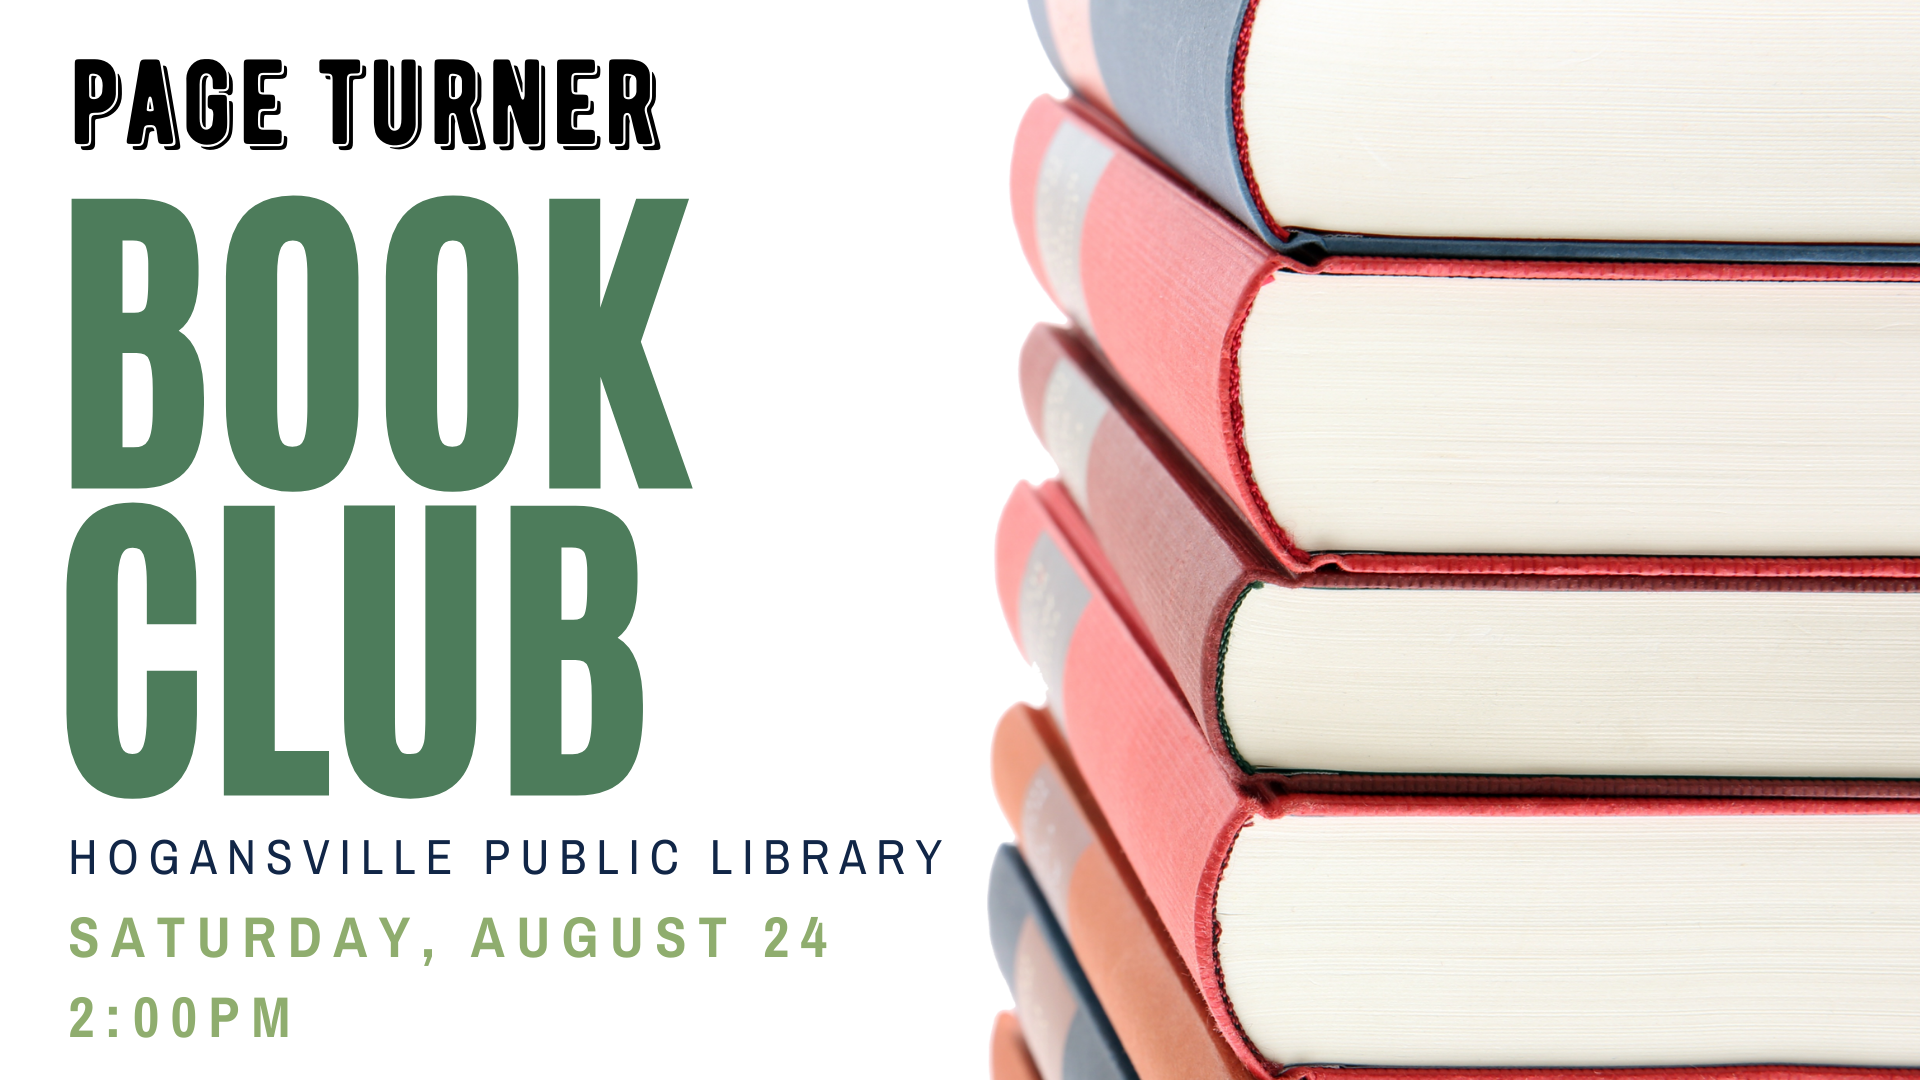 Page Turner Book Club at the Hogansville Library on Saturday, August 24 at 2 PM. No required book, just come and talk about whatever you've been reading lately.